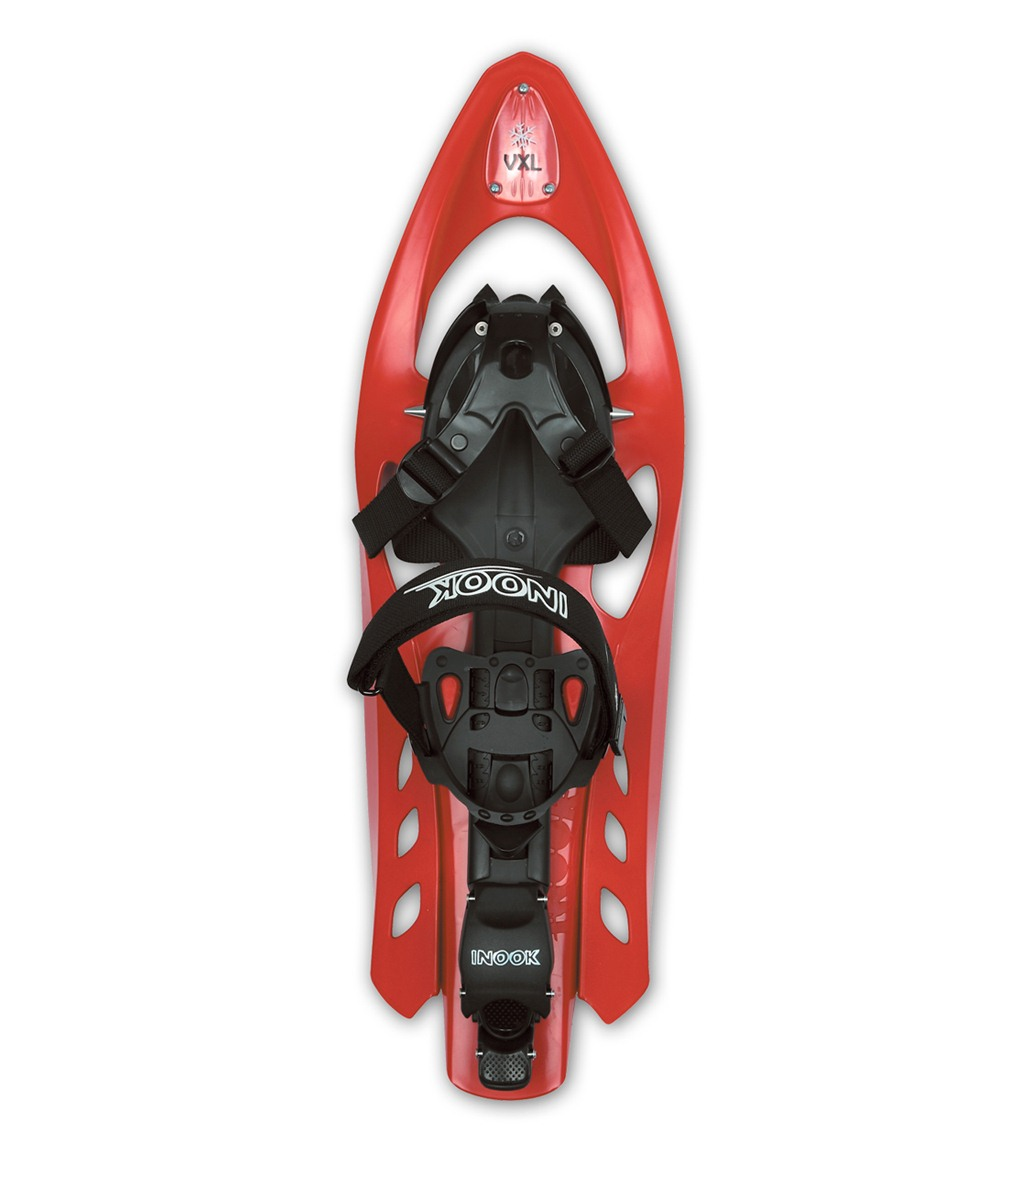 SNOWSHOES VXL INOOK